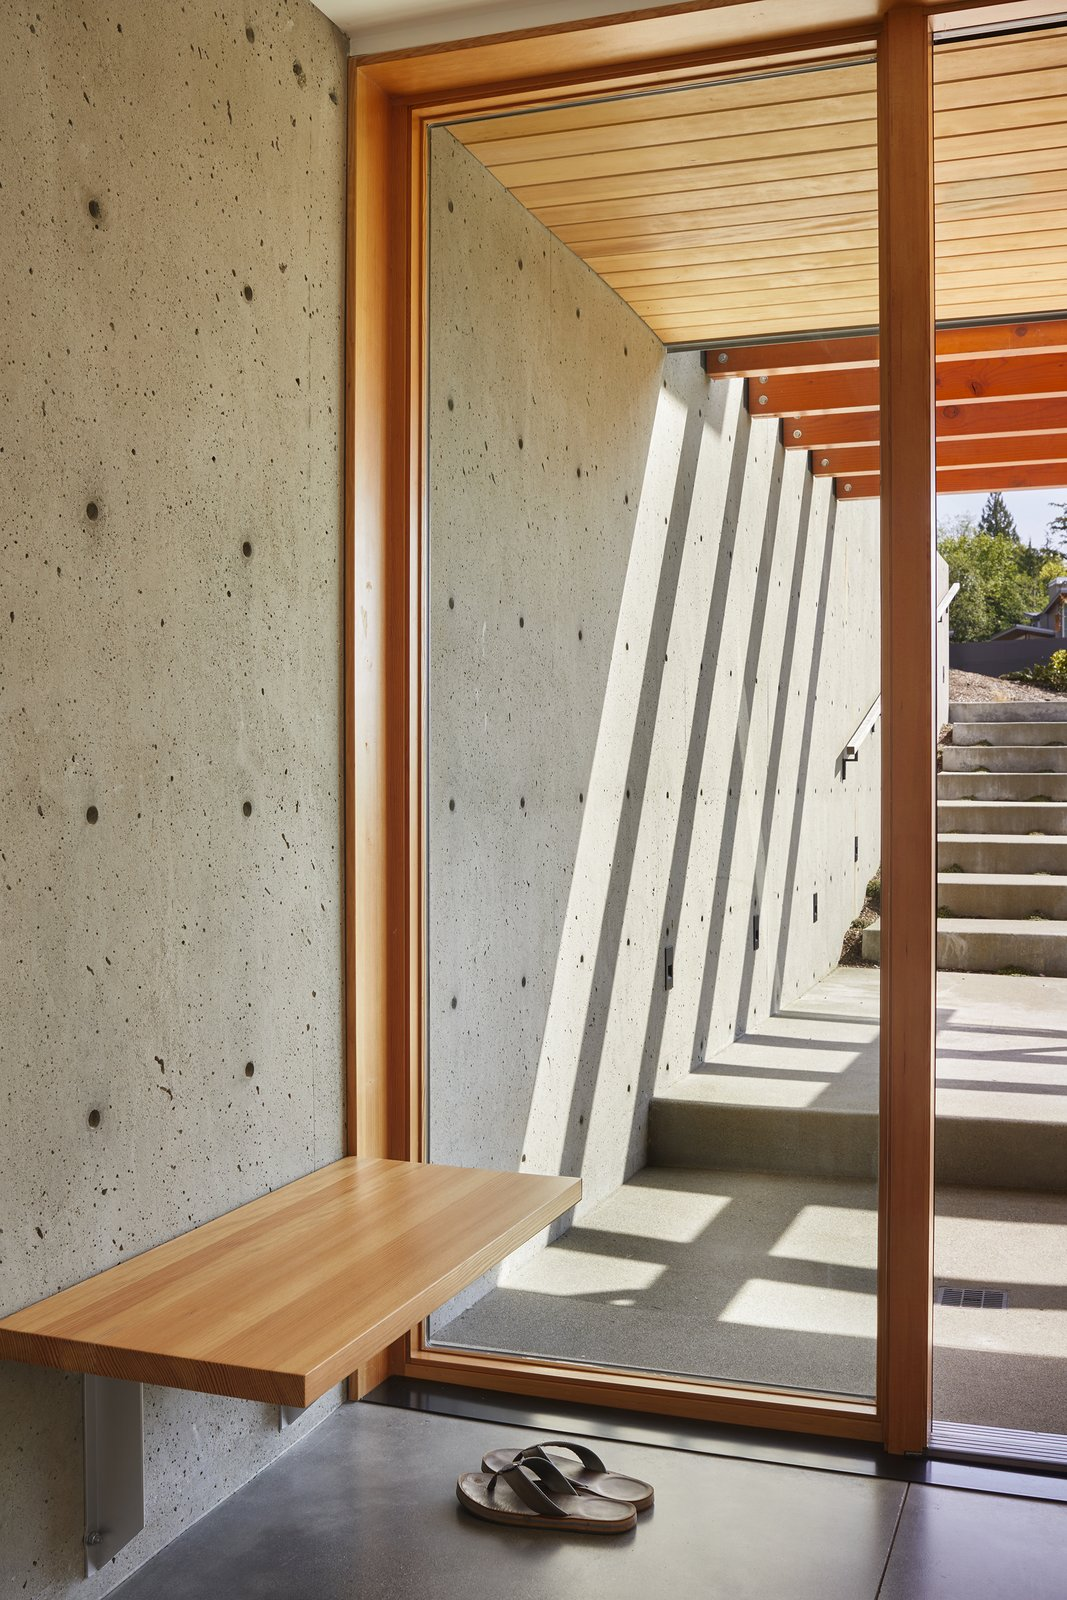 Doors  Issaquah Highlands Residence by Studio Zerbey Architecture